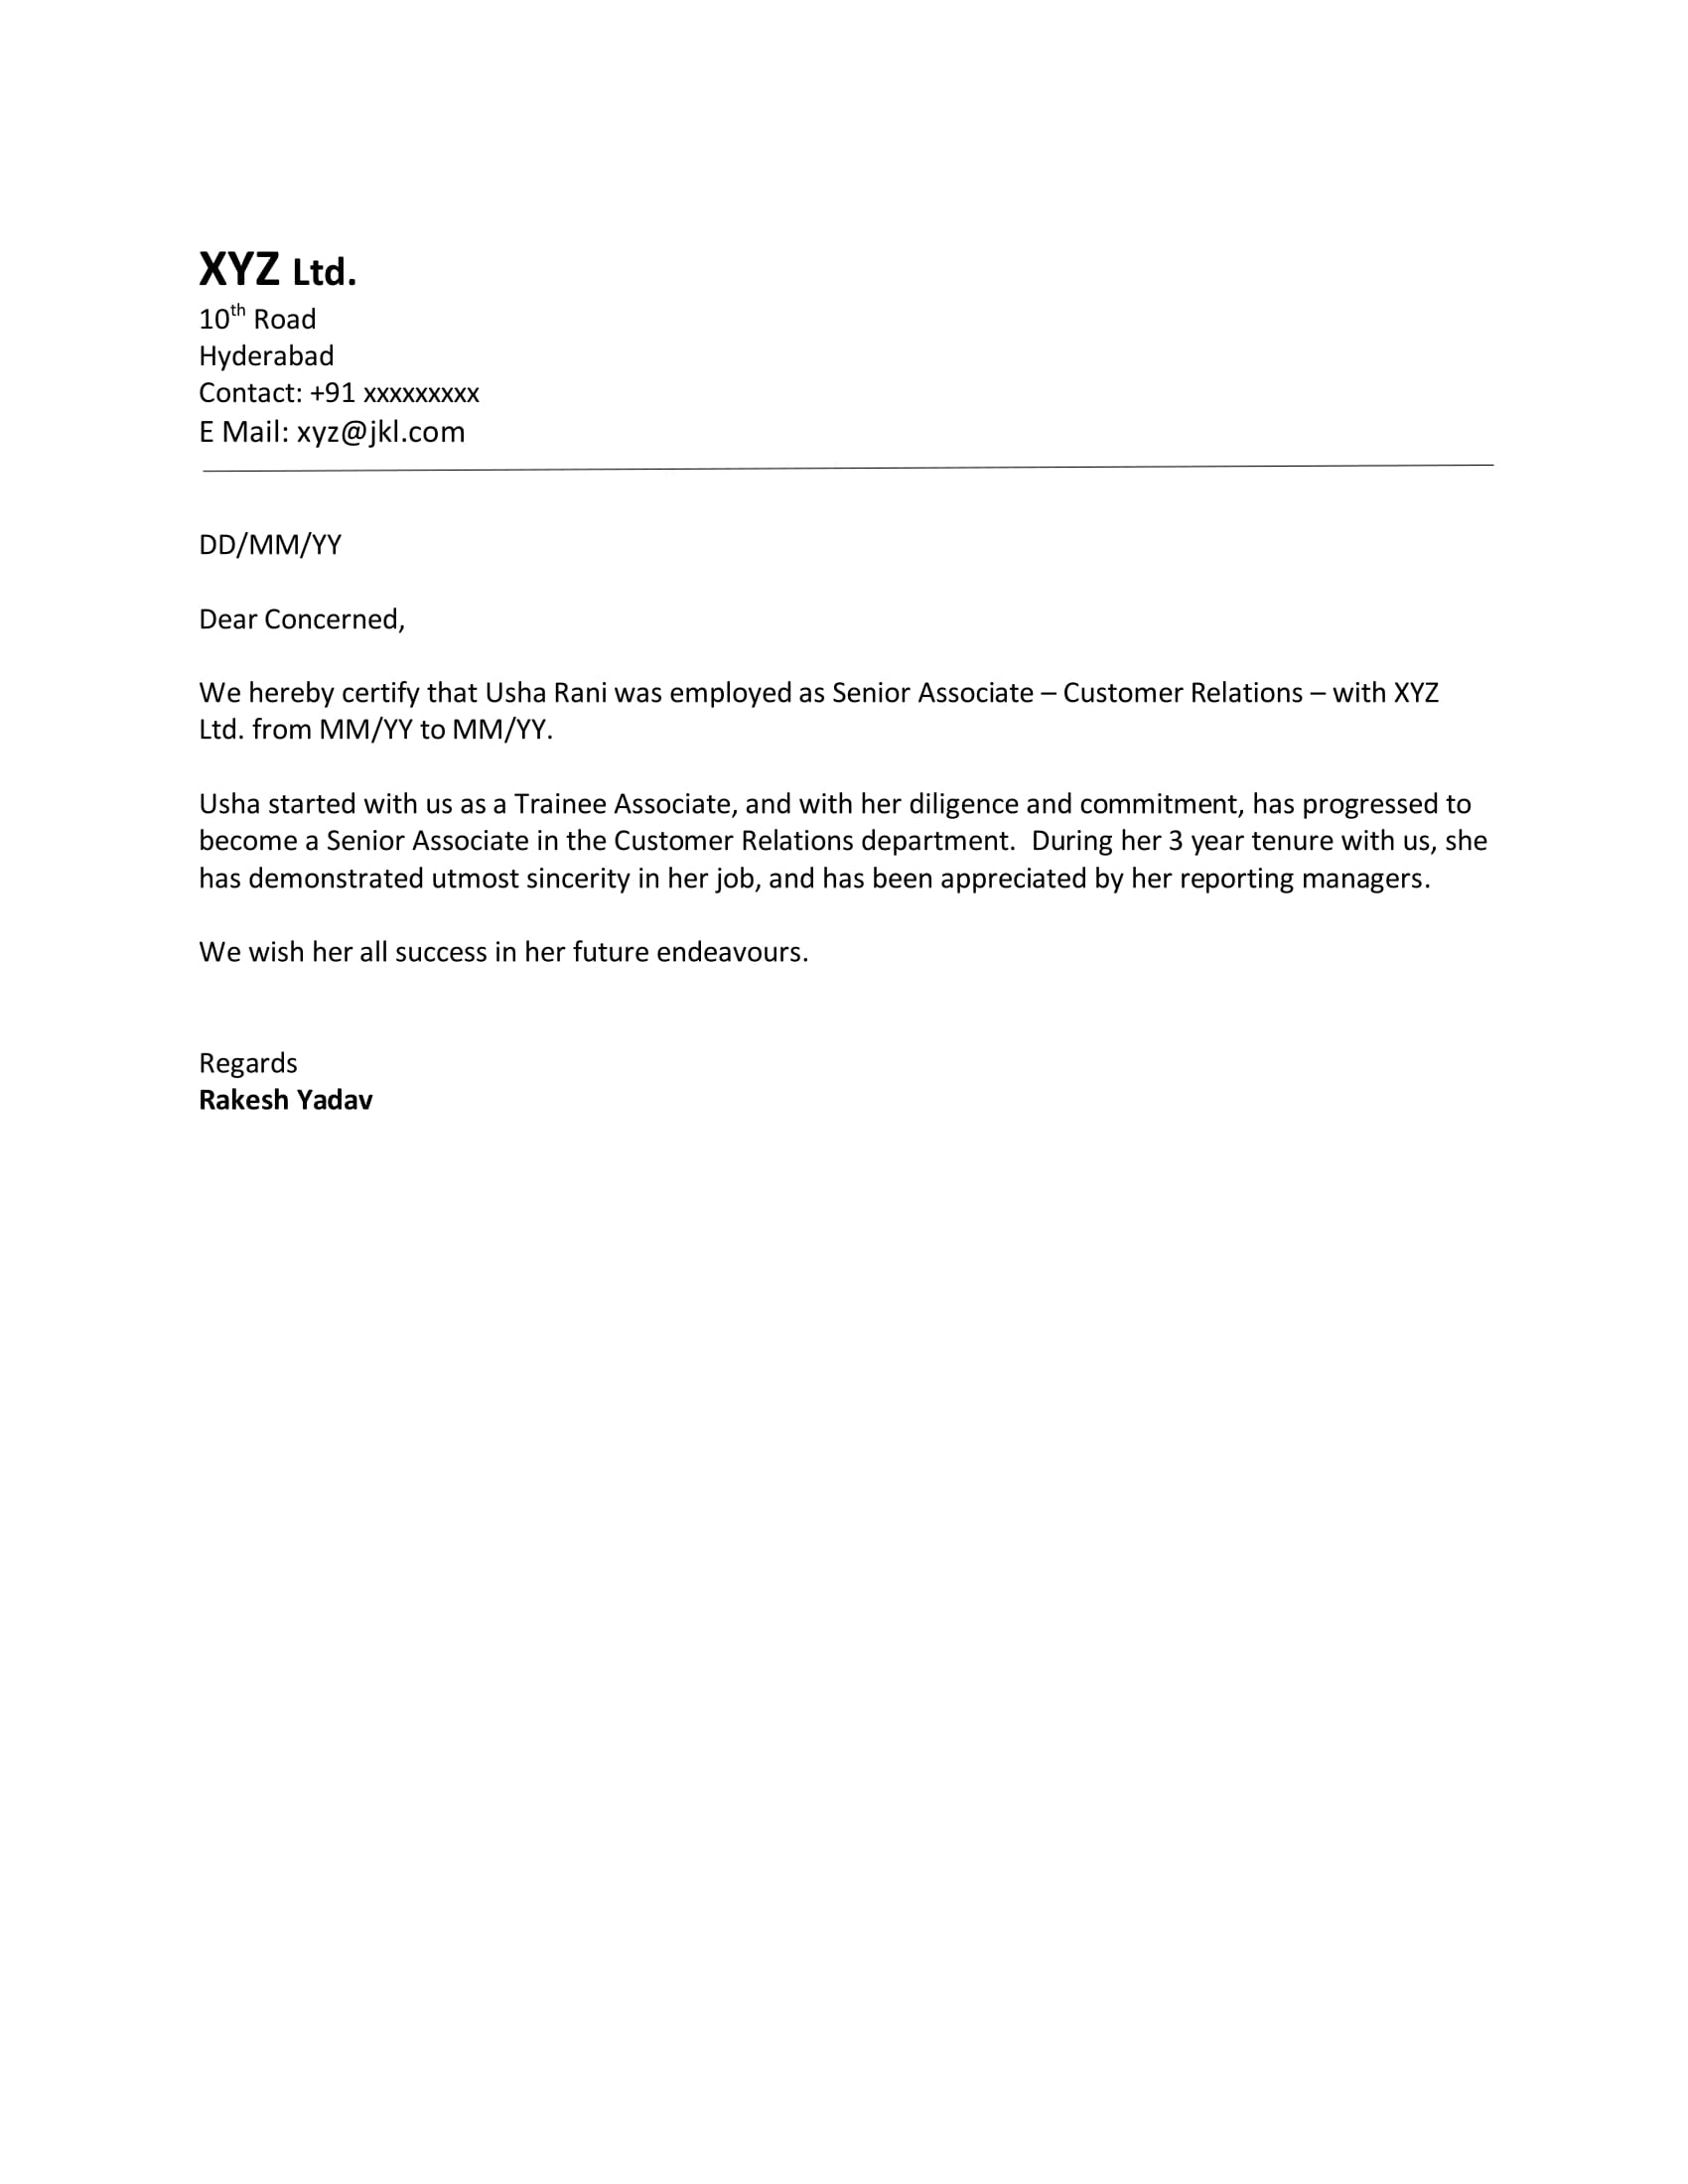 Experience Sample Letter Format Download Letter Format Templates